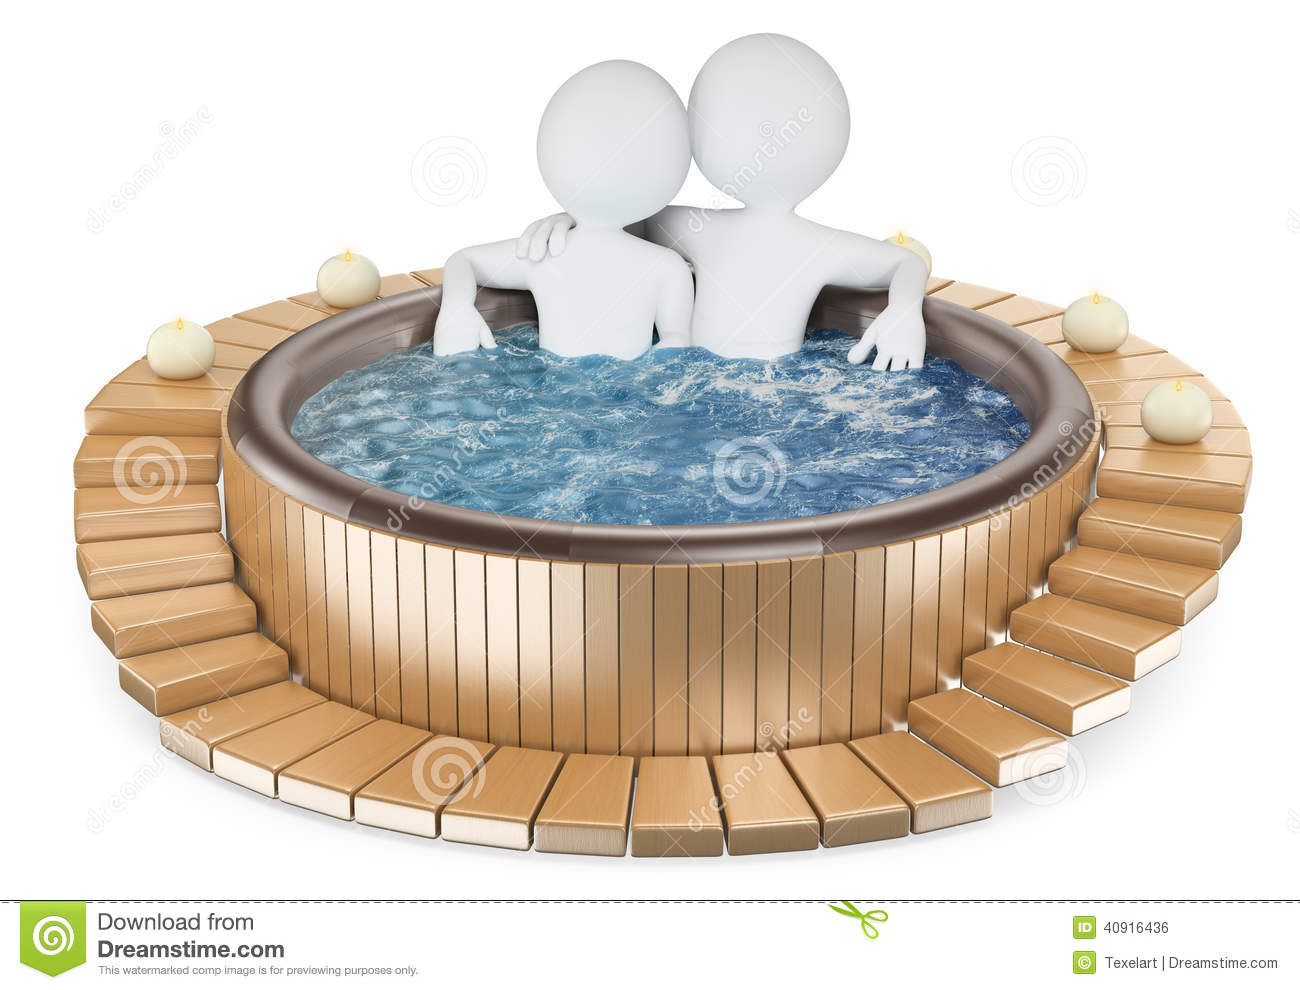 background candles couple jacuzzi people relaxing white wooden wood ...